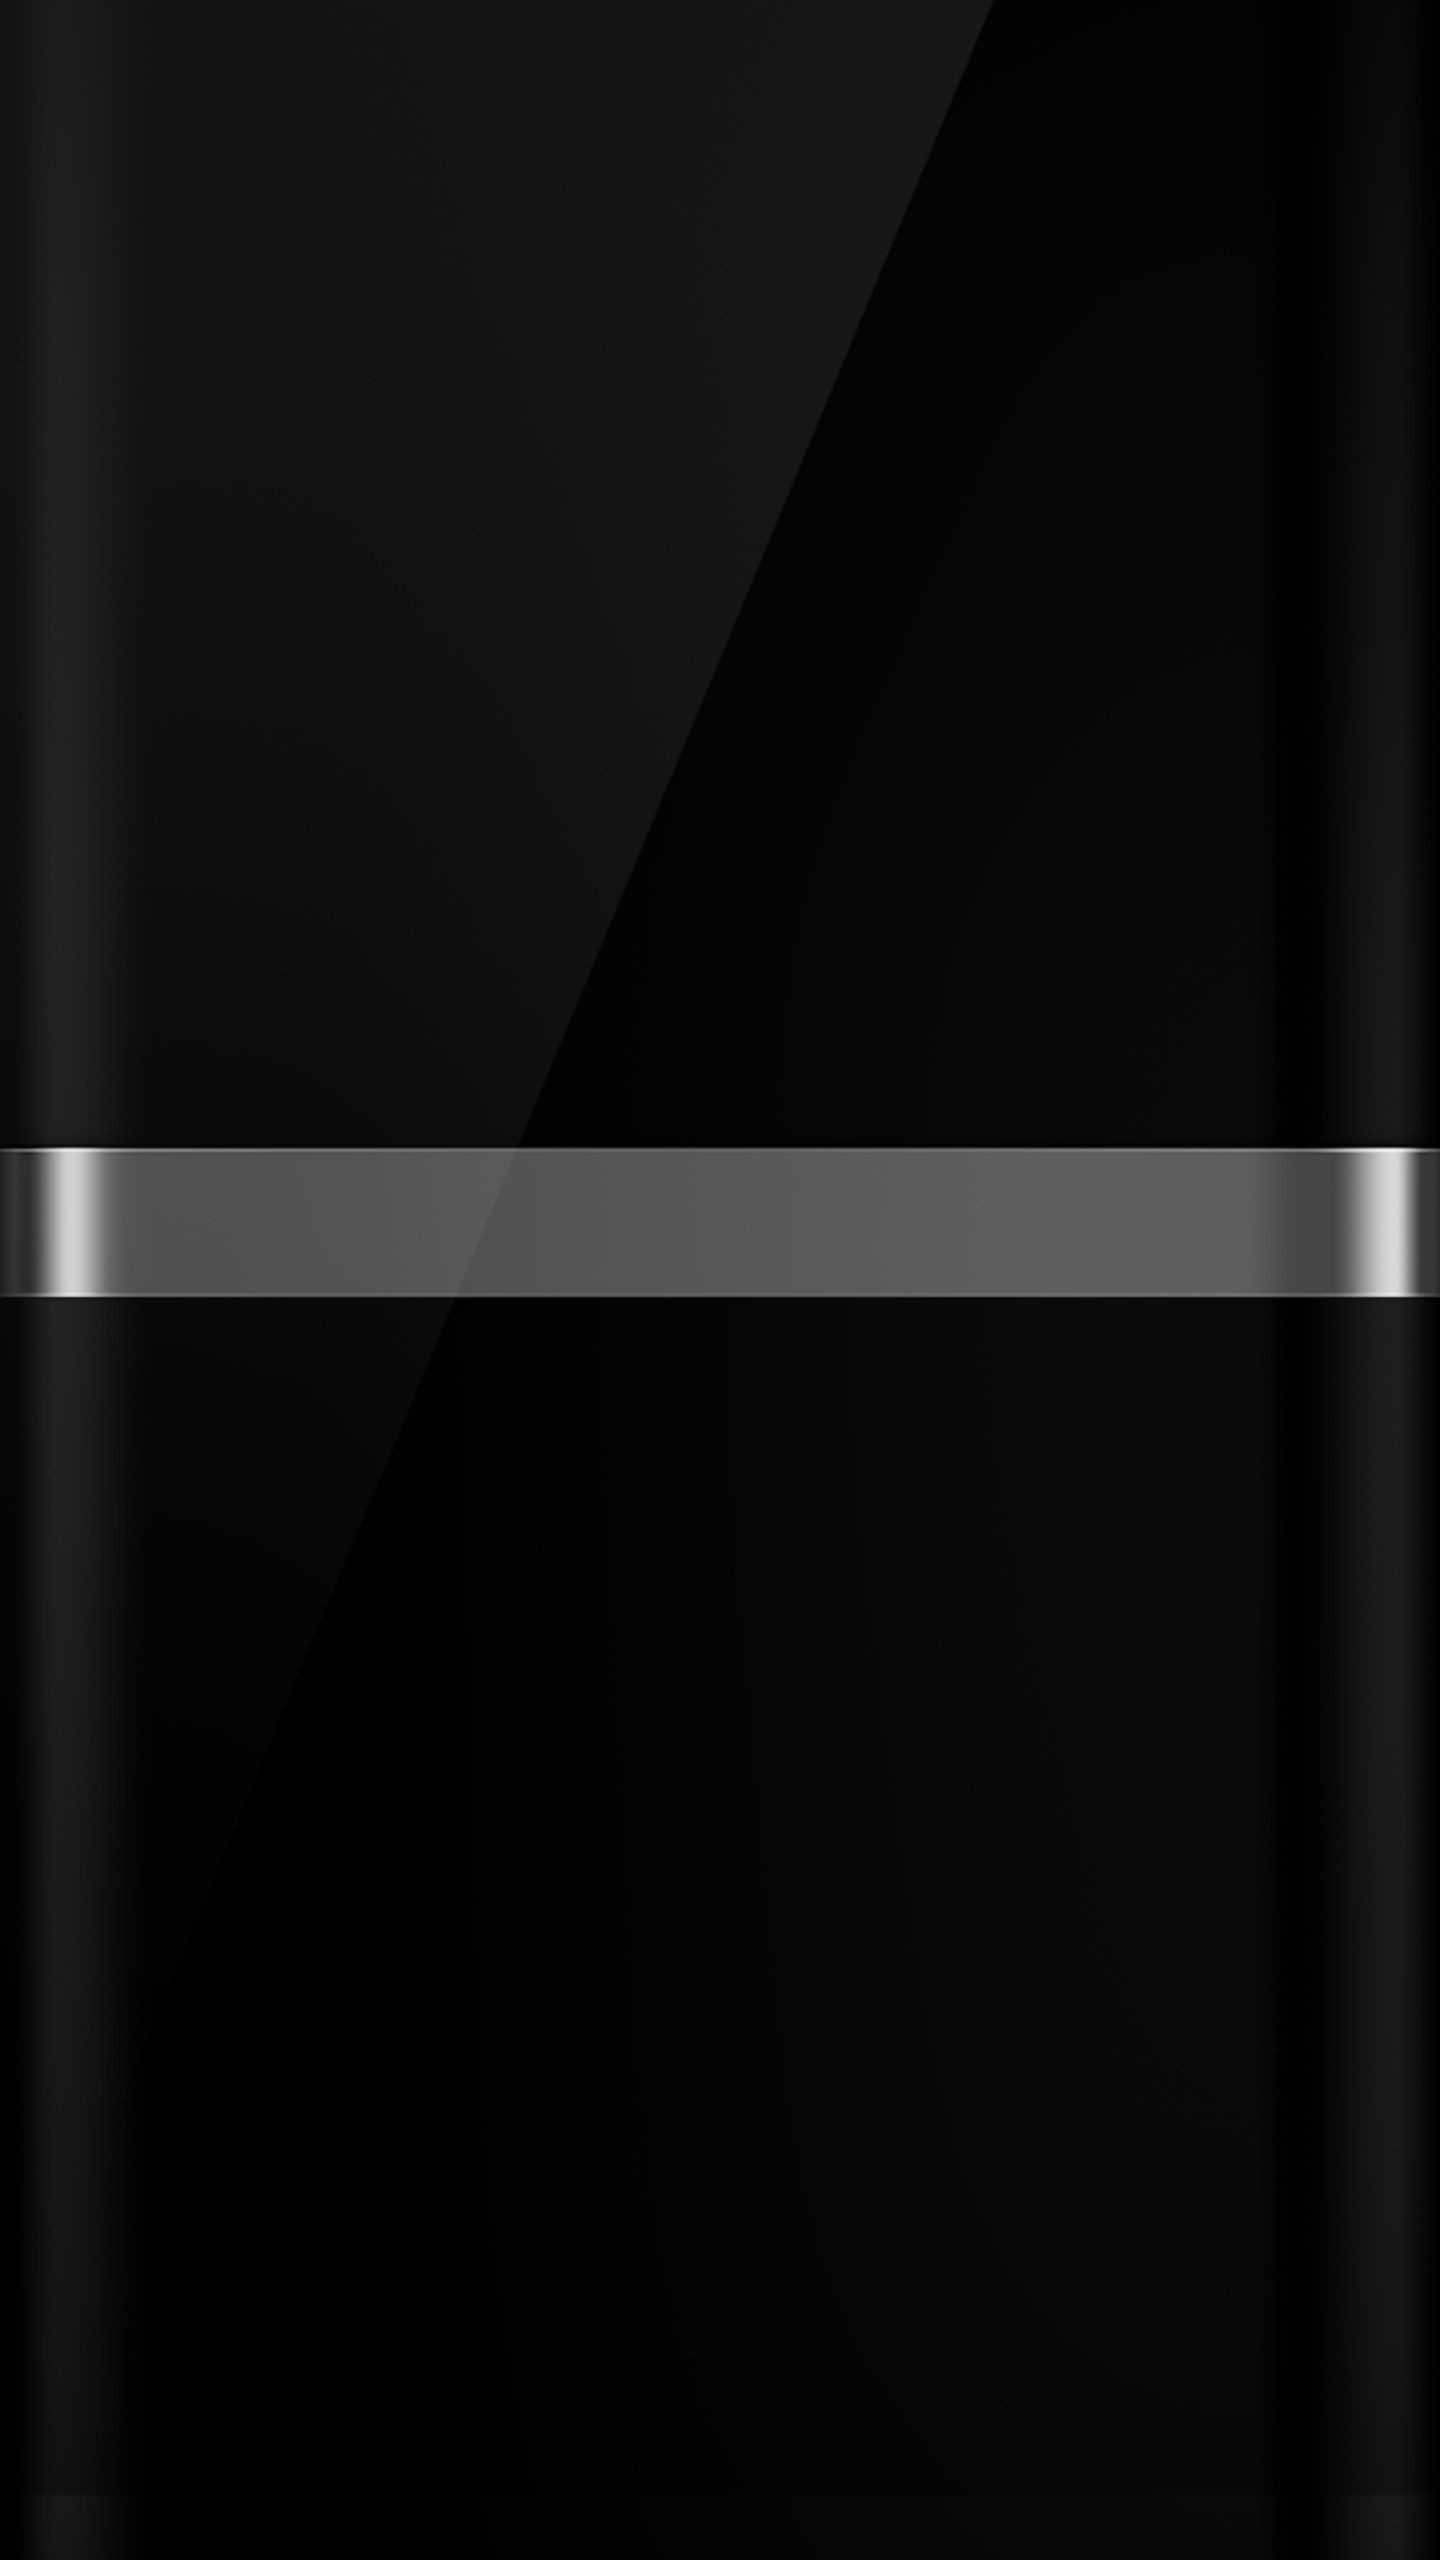 1440x2560 The Dark S7 Edge Wallpaper 08 with Black Background and Silver Line